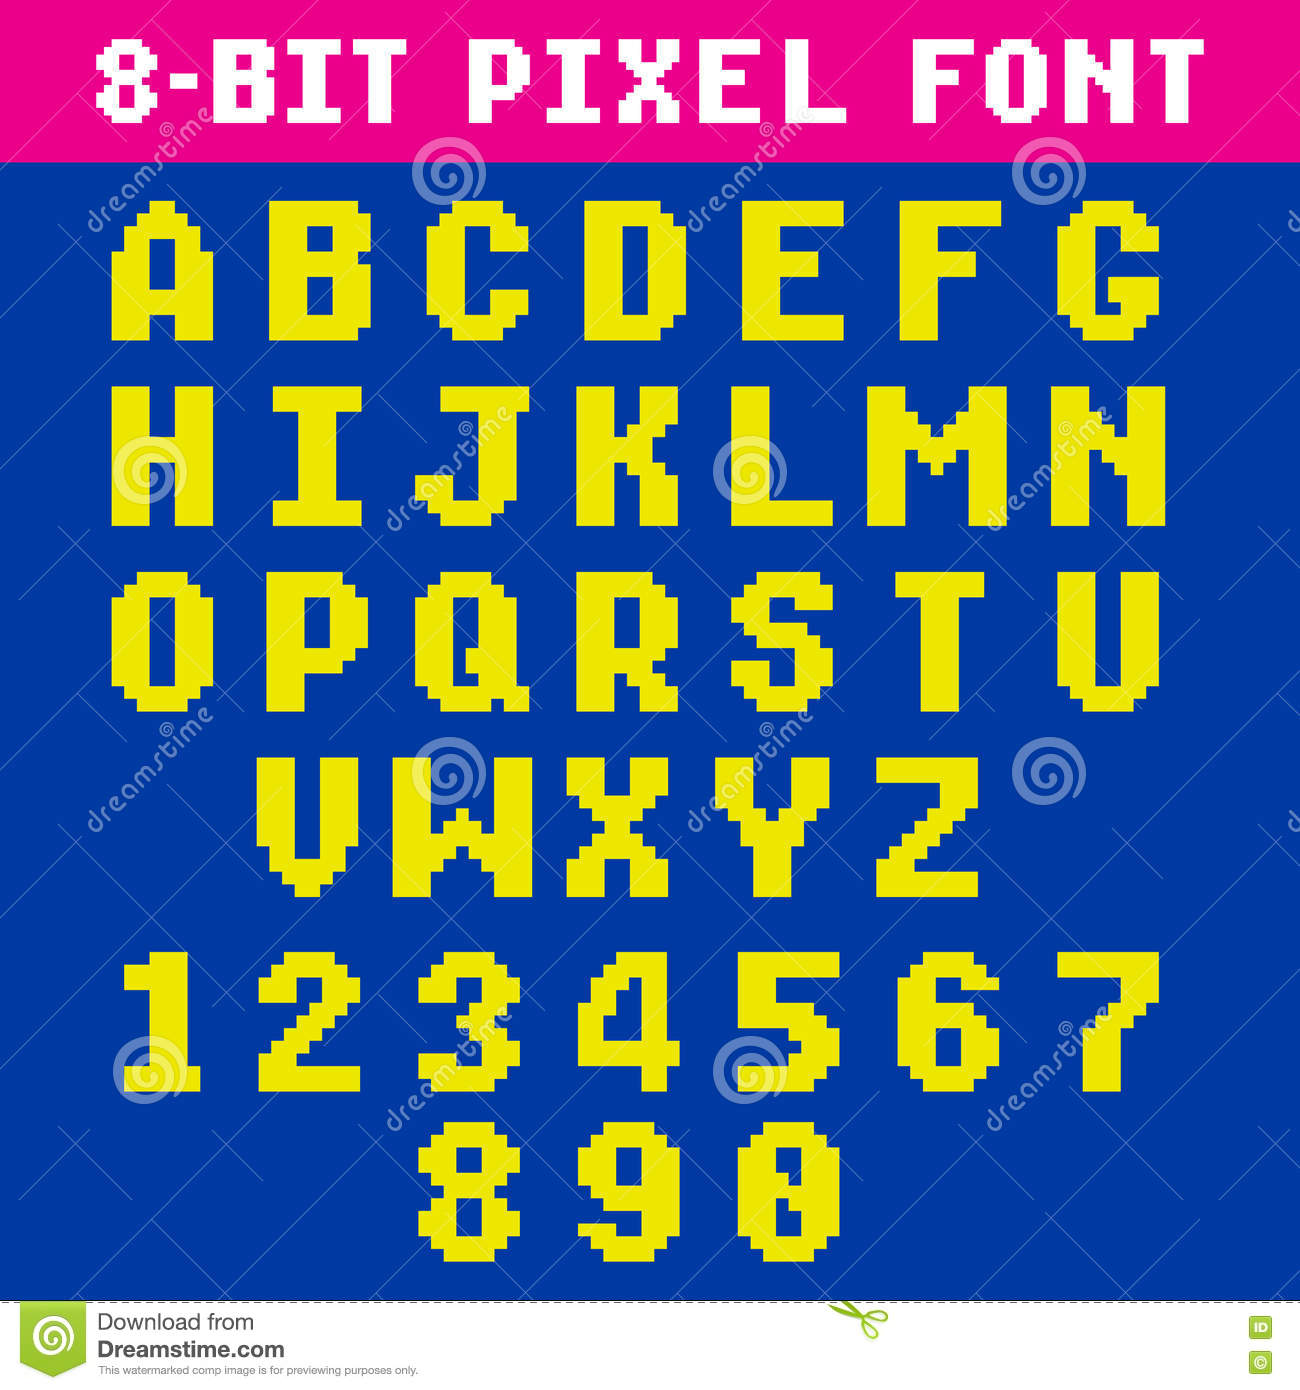 Retro Video Game Font 2 Stock Vector - Image: 84233561